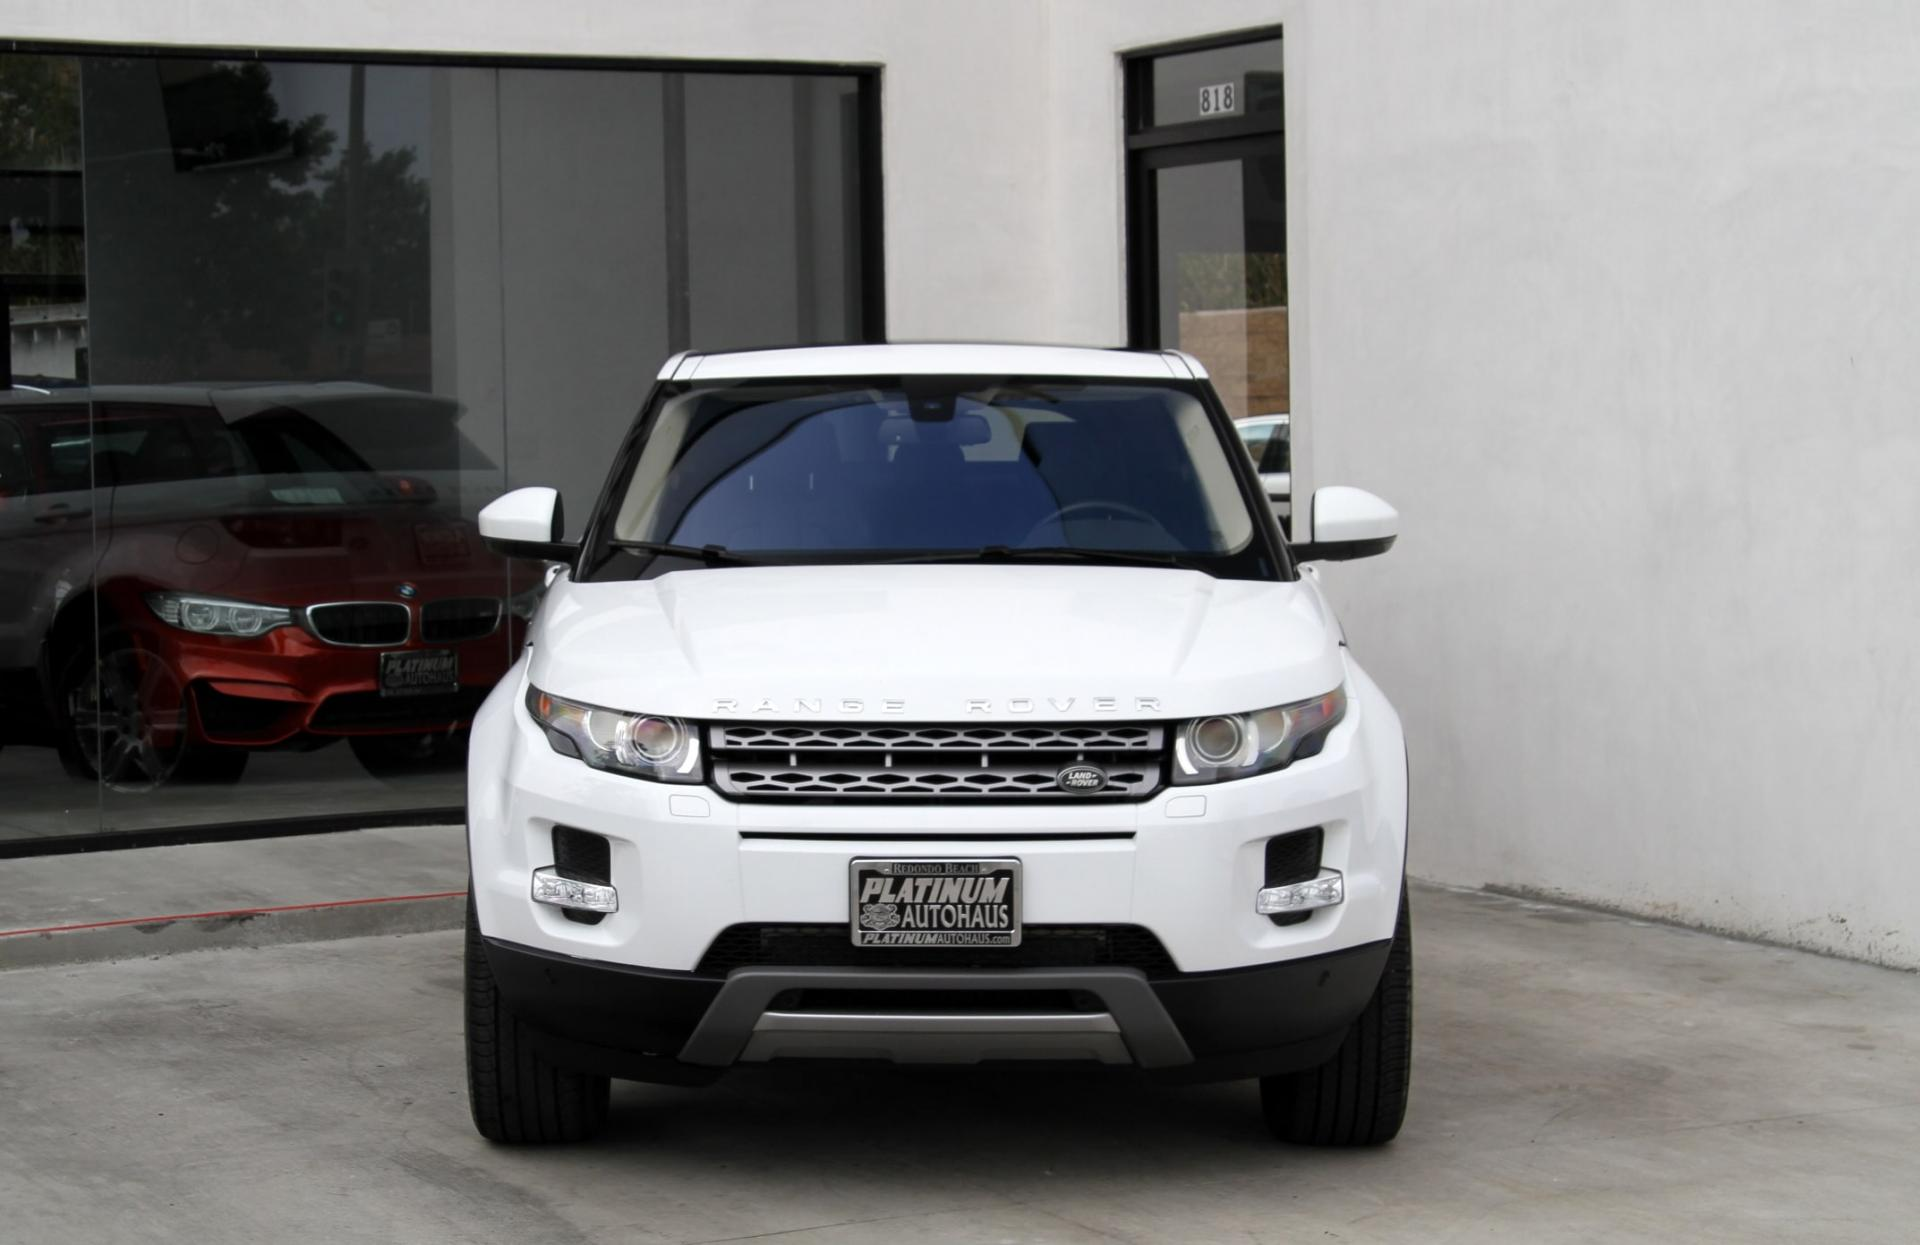 2014 land rover range rover evoque pure plus stock 6234 for sale near redondo beach ca ca - Land rover garage near me ...